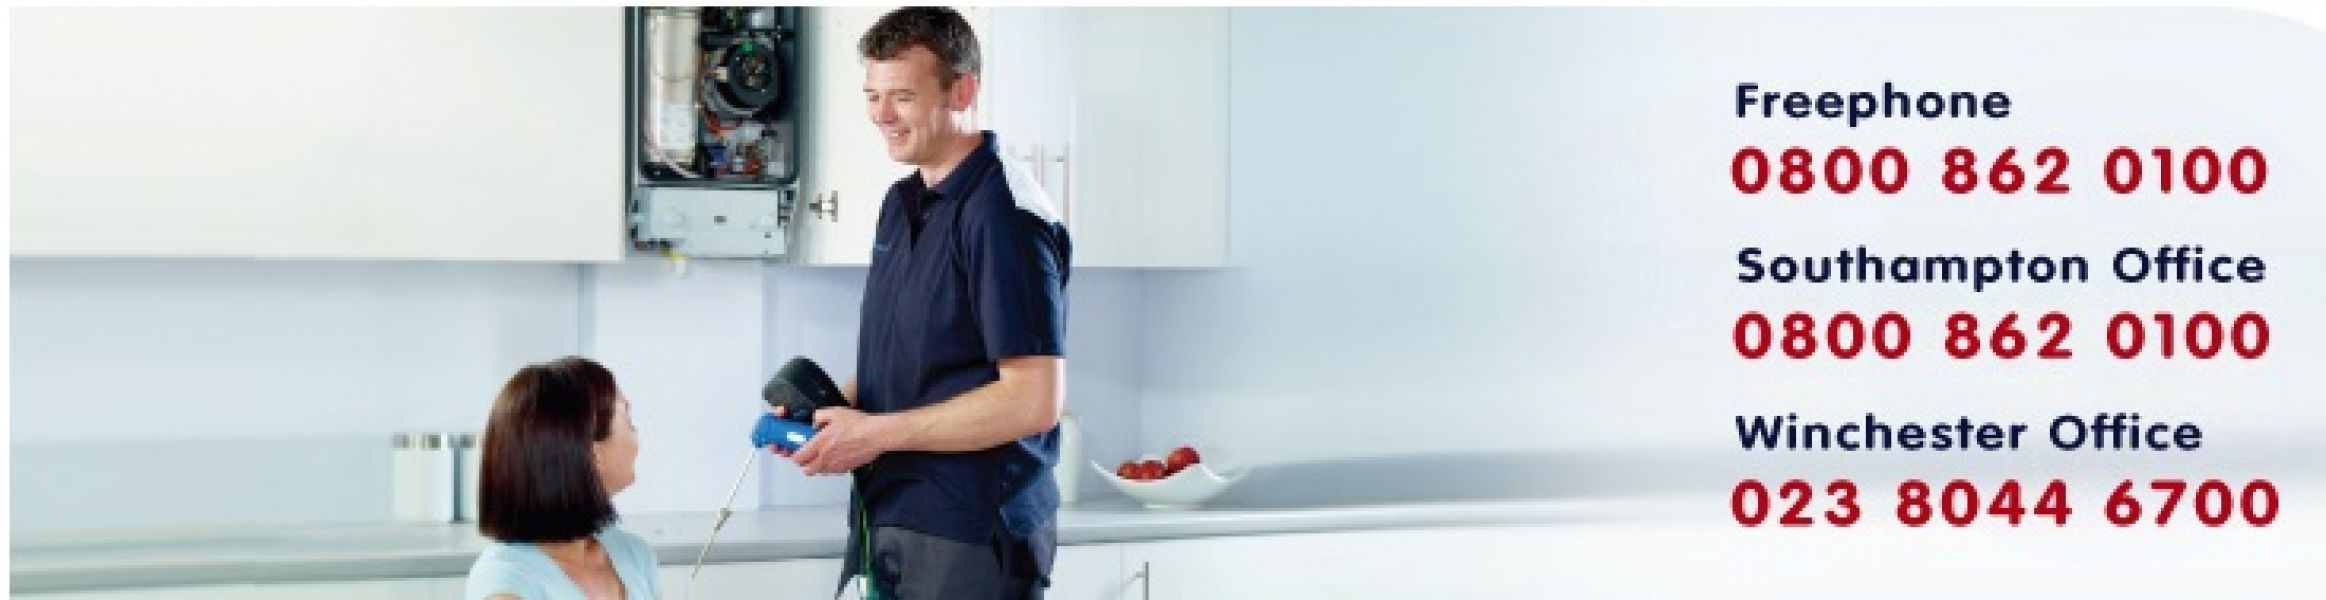 Urgent General Plumbing Services in Southampton